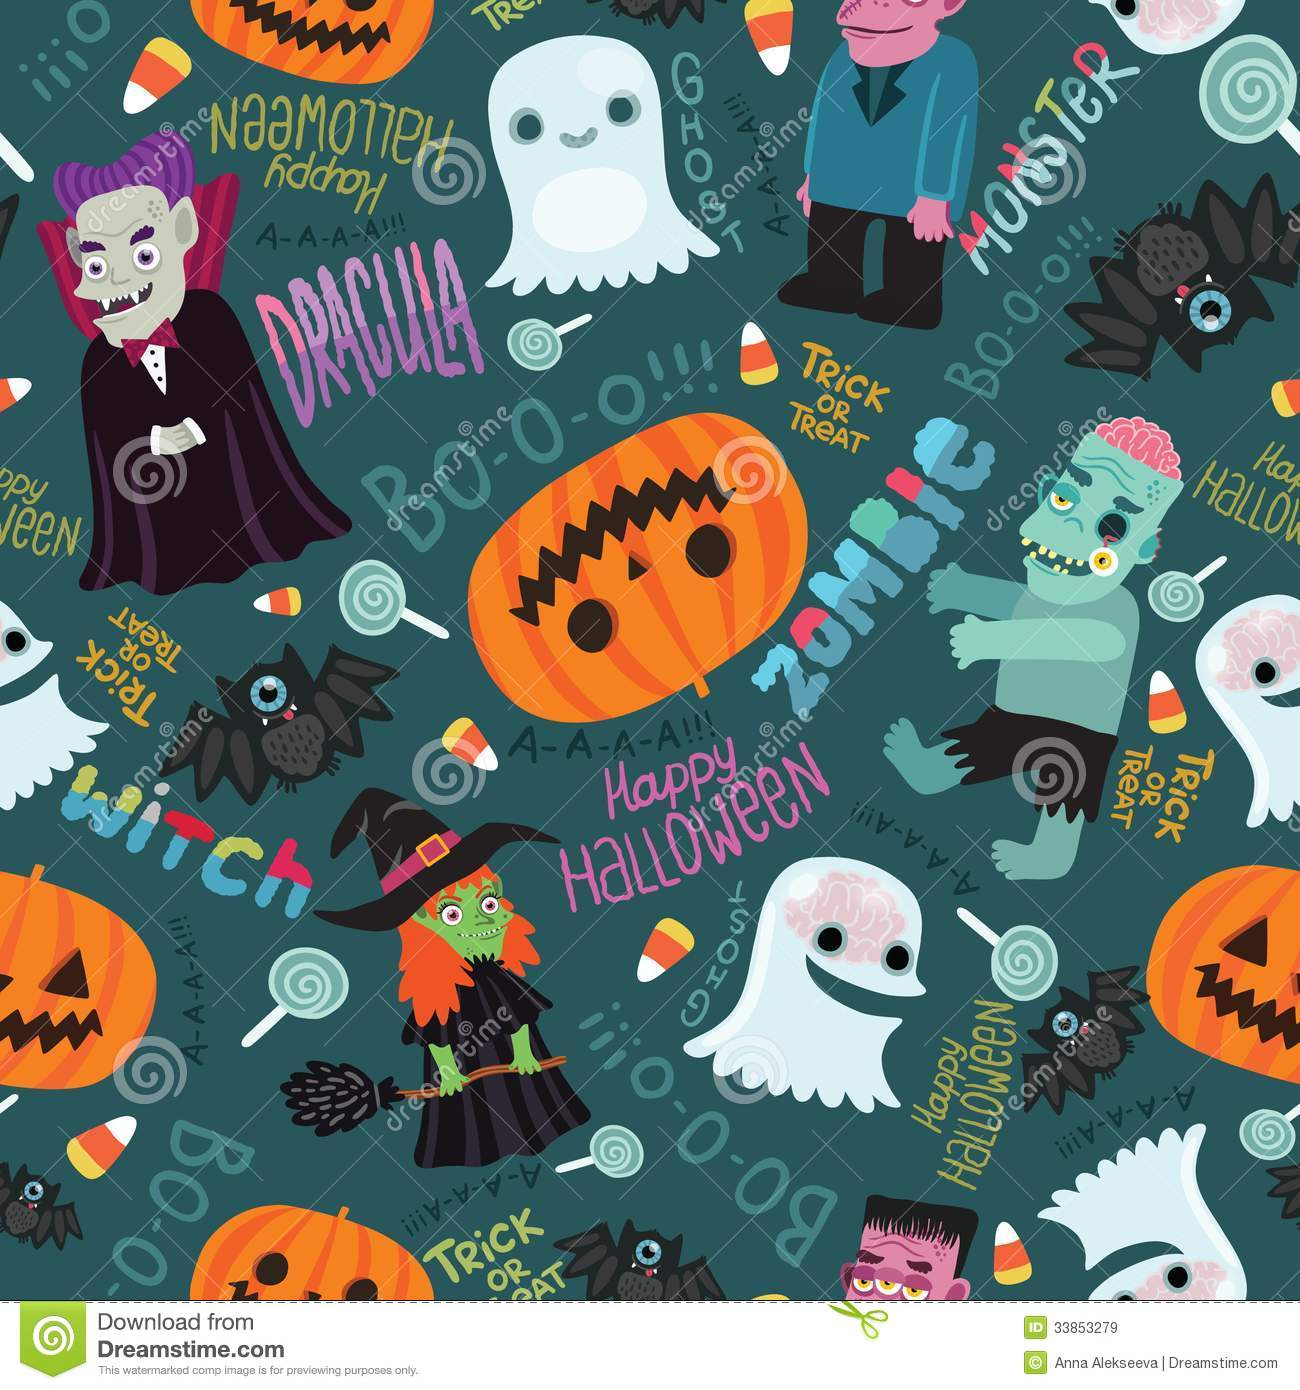 Cute Ghost Wallpaper - WallpaperSafari